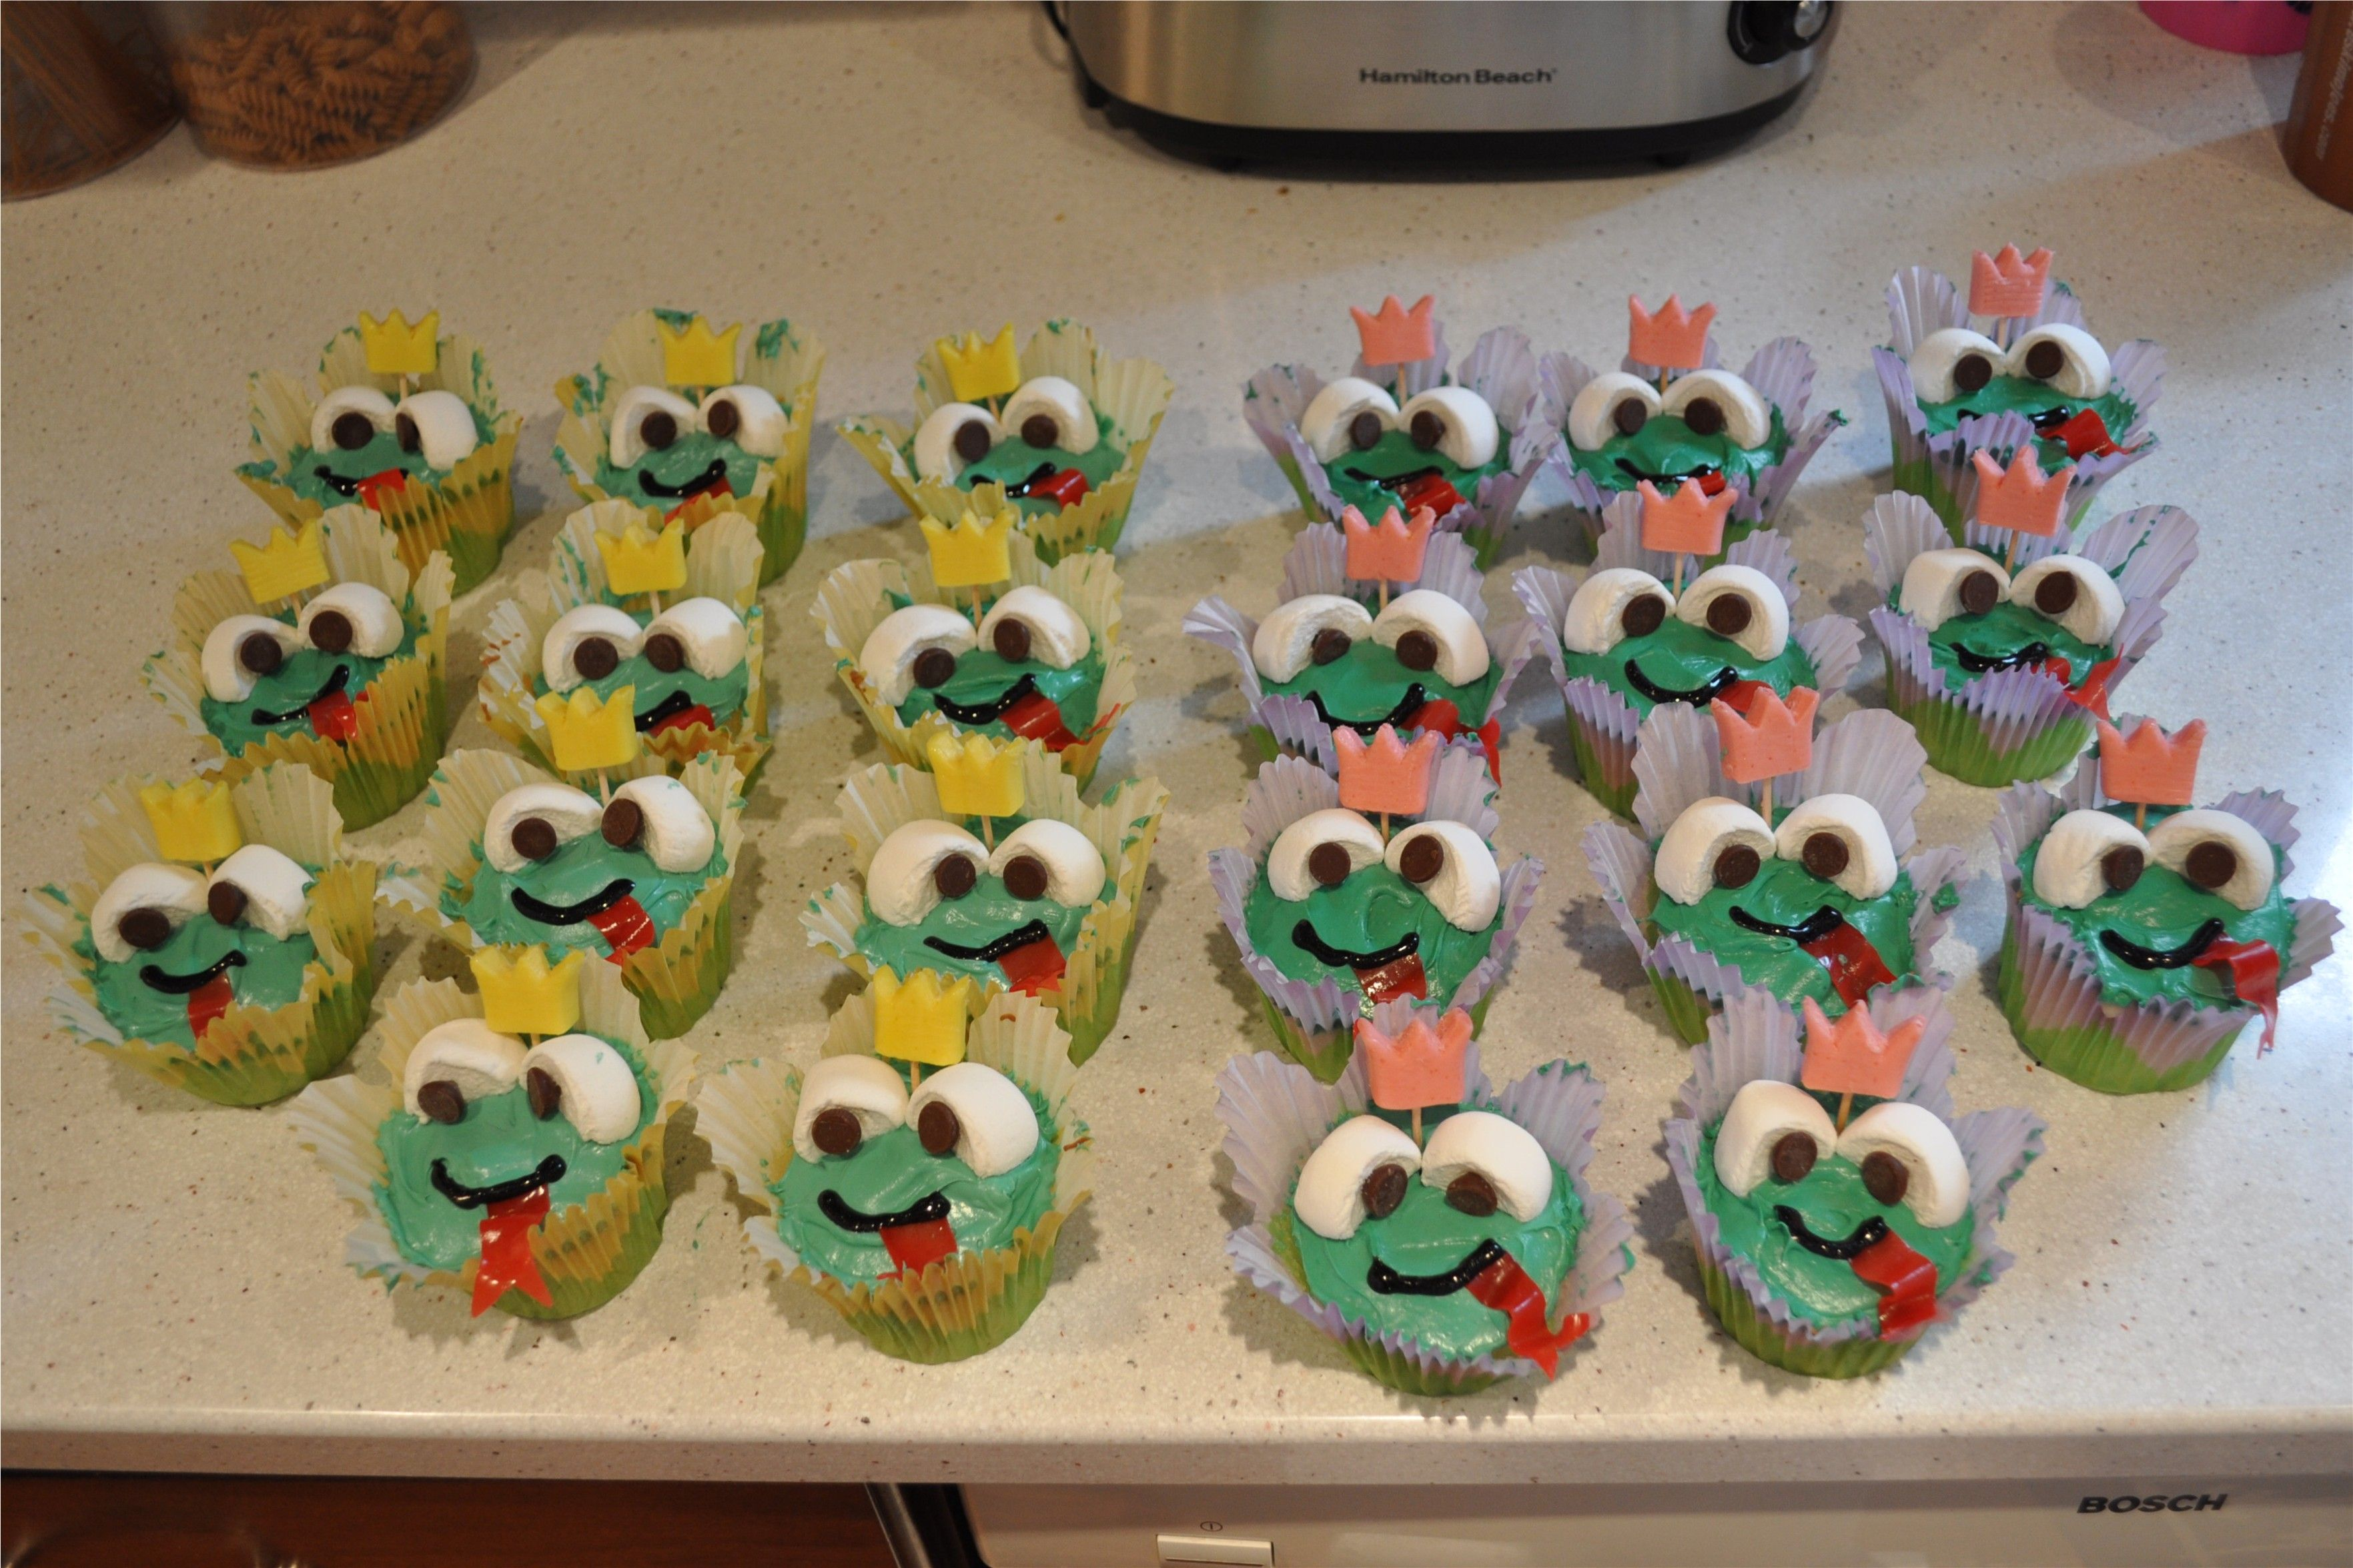 Frog cupcakes - starburst, marshmallows, chocolate chips, and fruit roll-ups